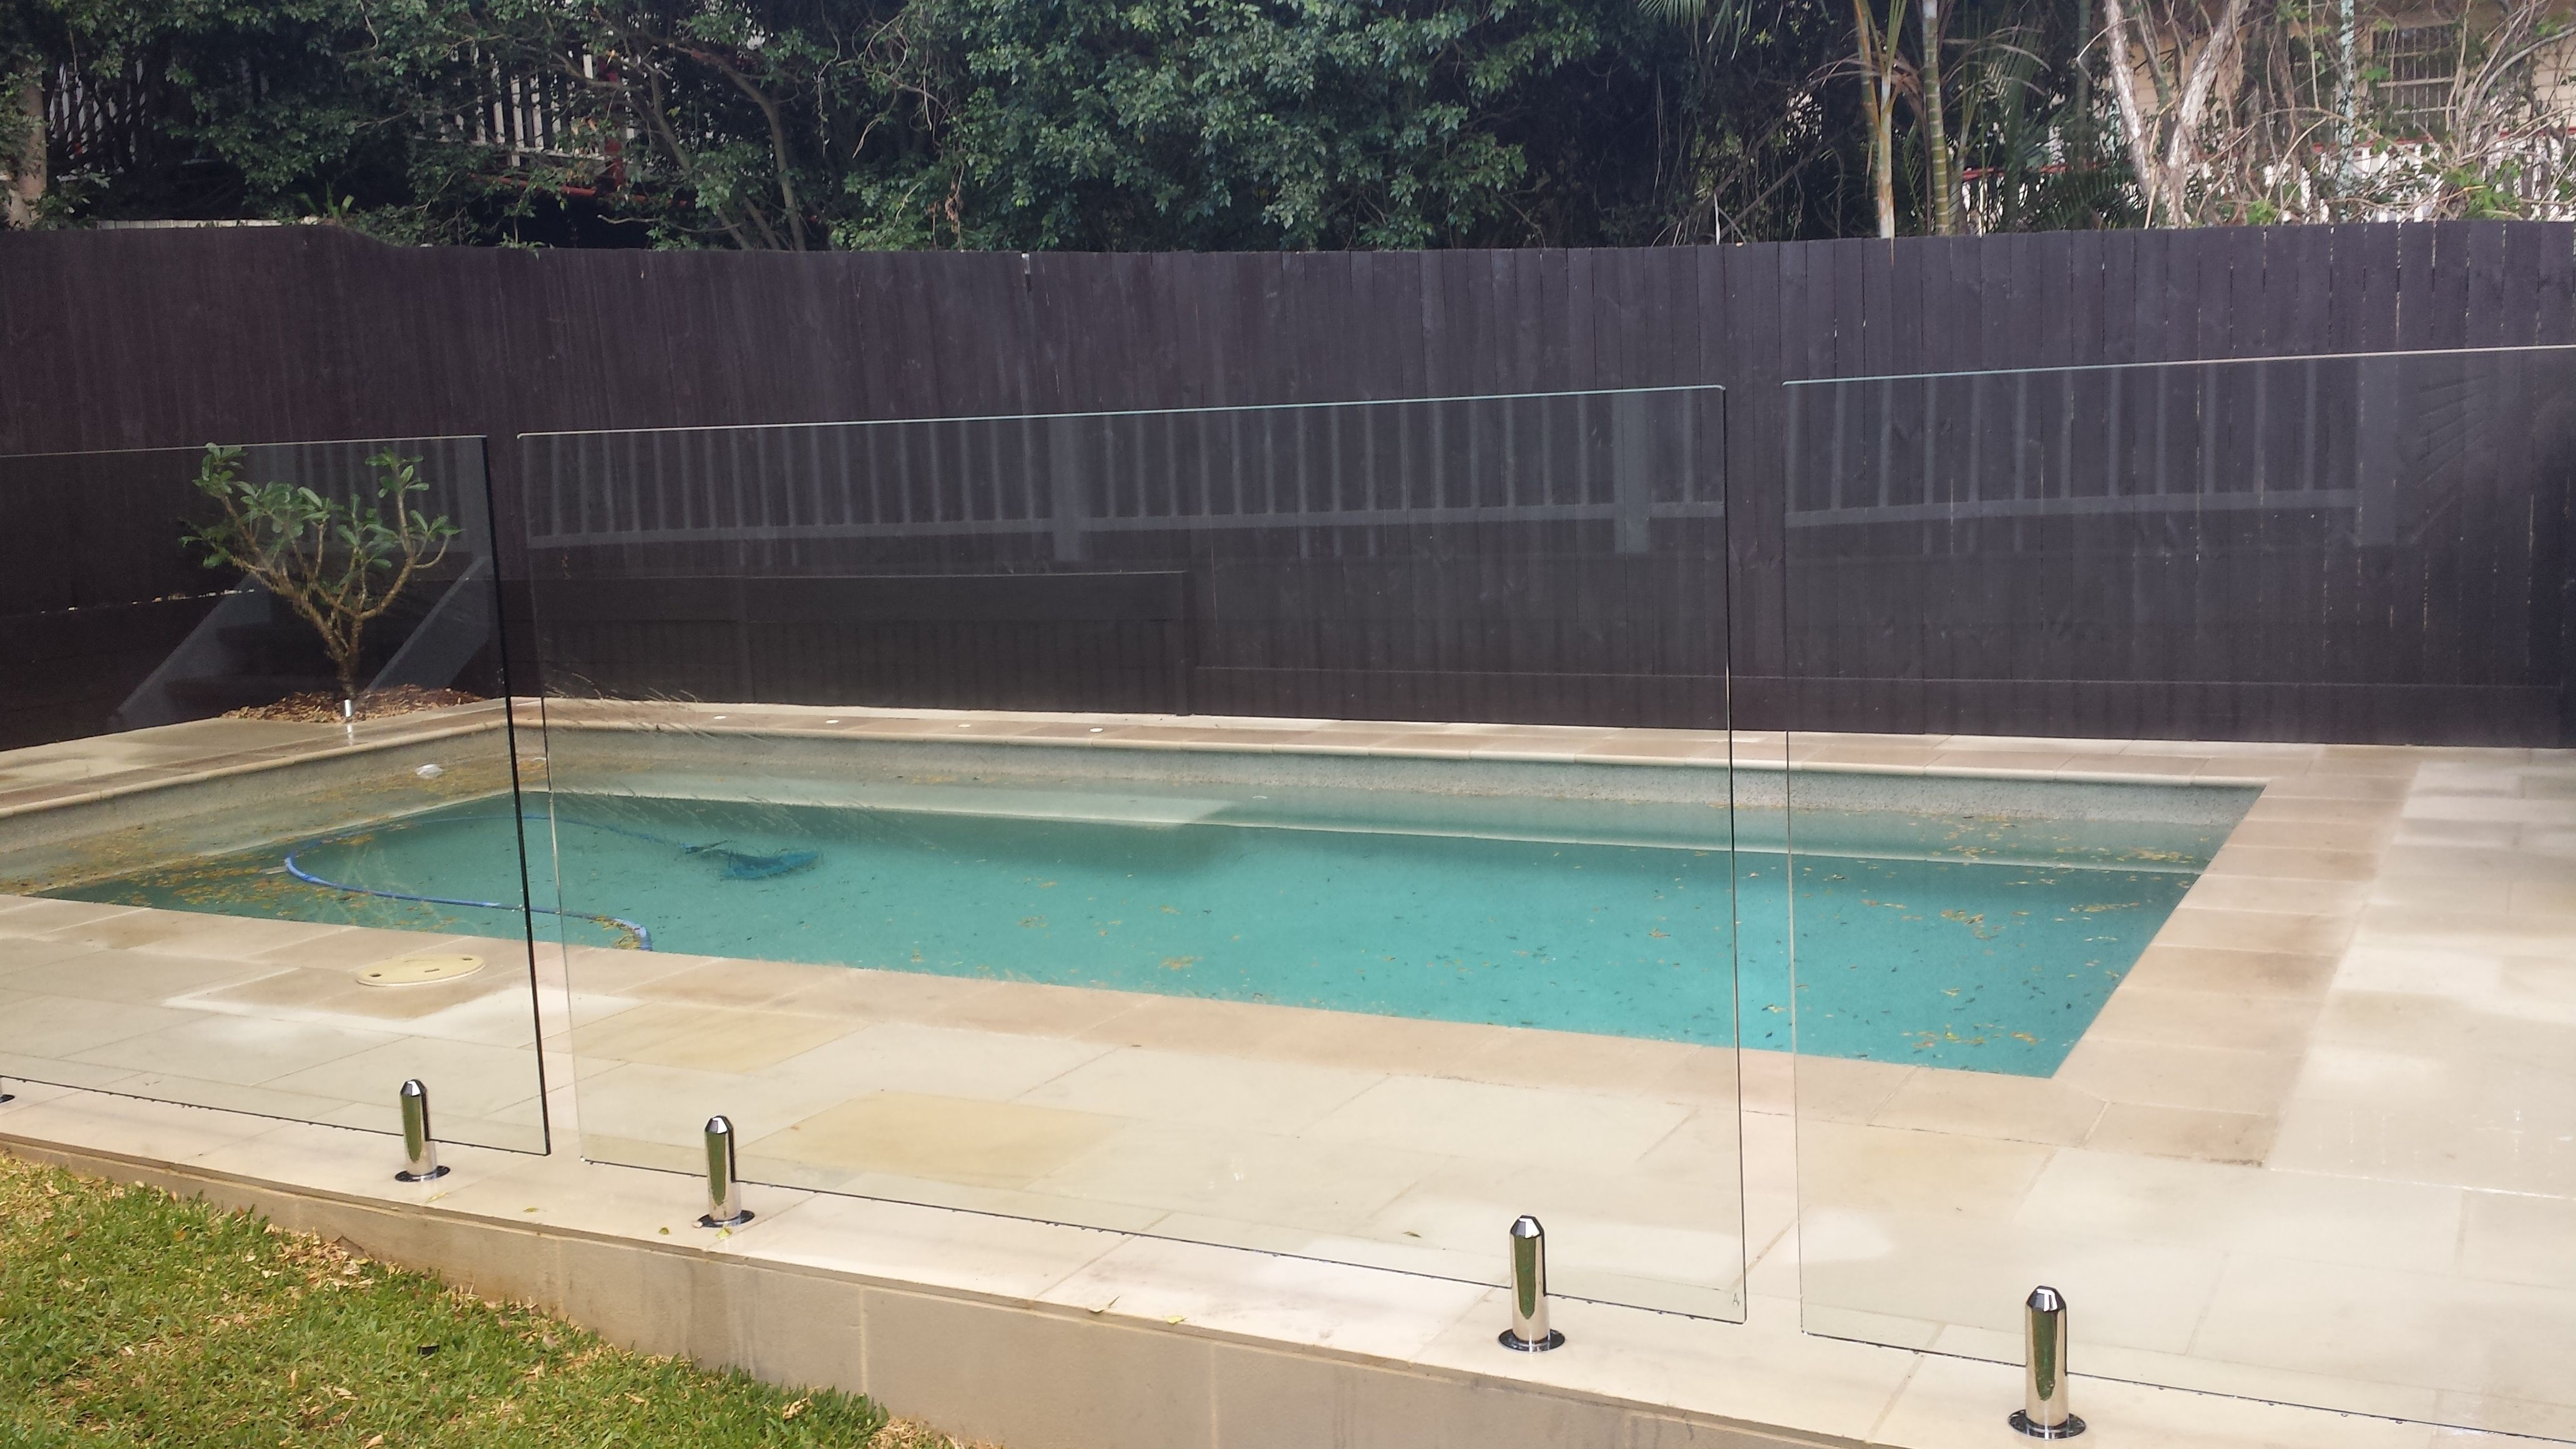 Sawn And Sandblasted Sandstone Paving And Coping Tile Around Pool